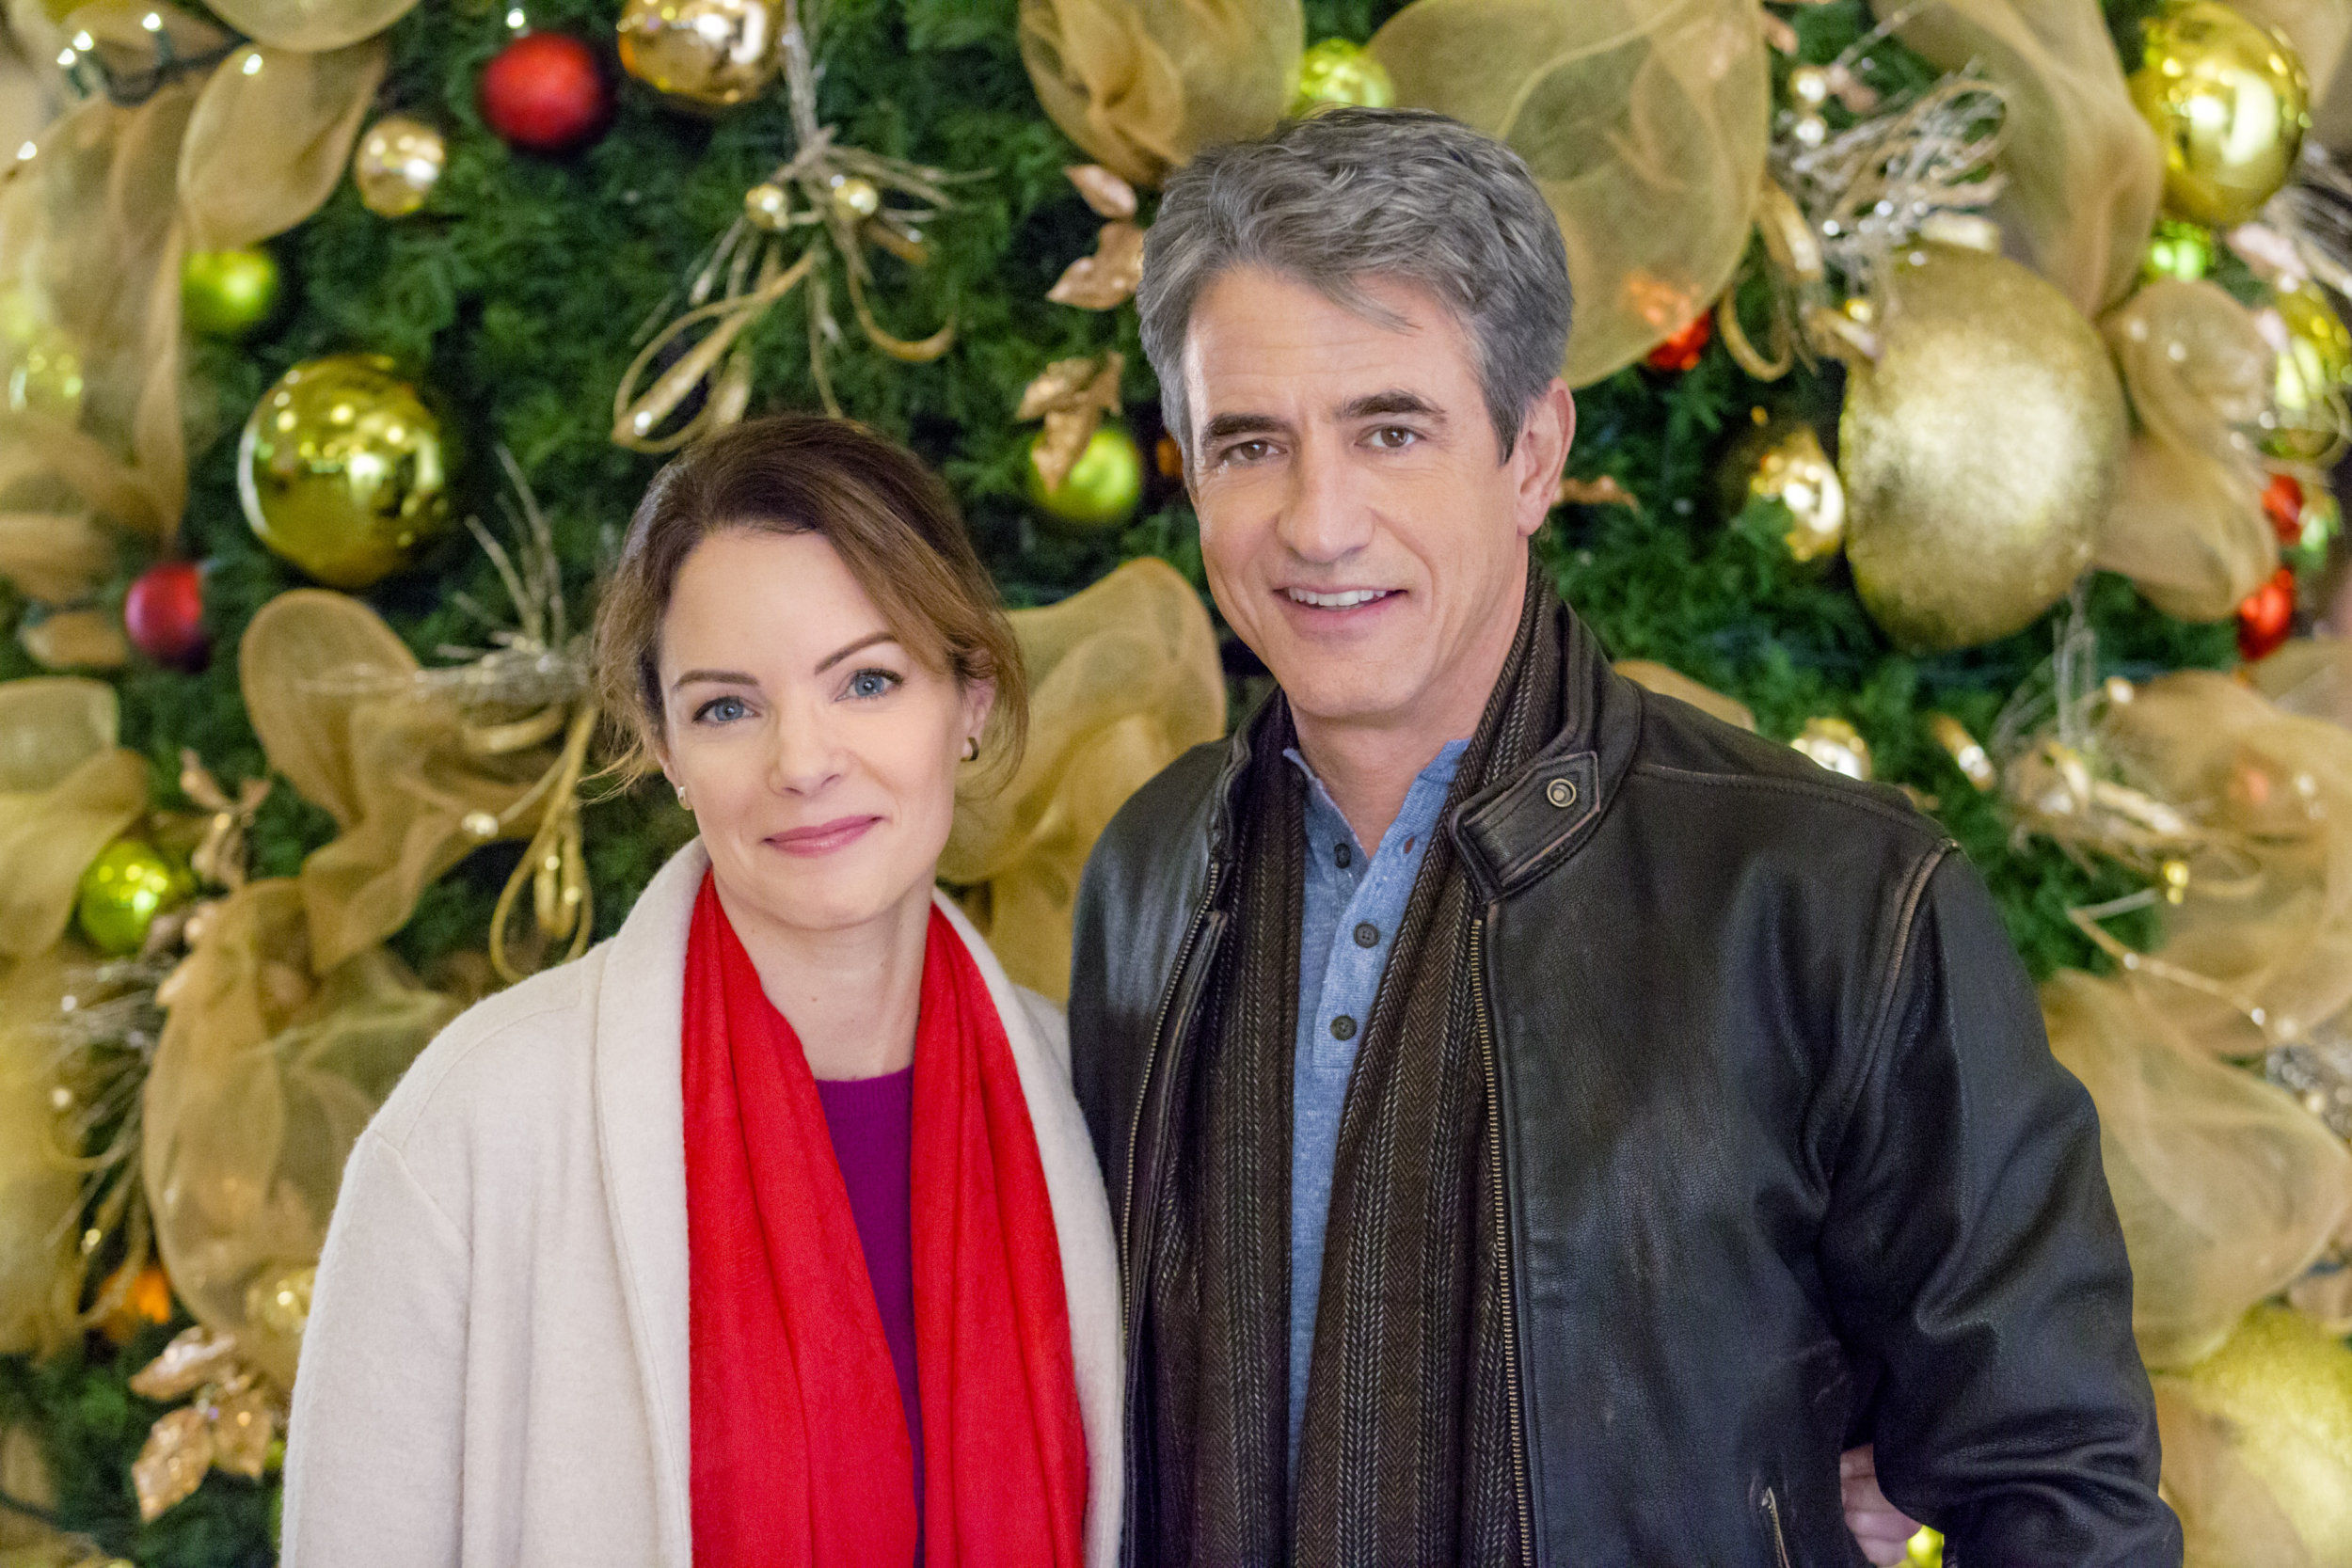 Mark Your Calendars for the Biggest Hallmark Christmas Movie of the Year